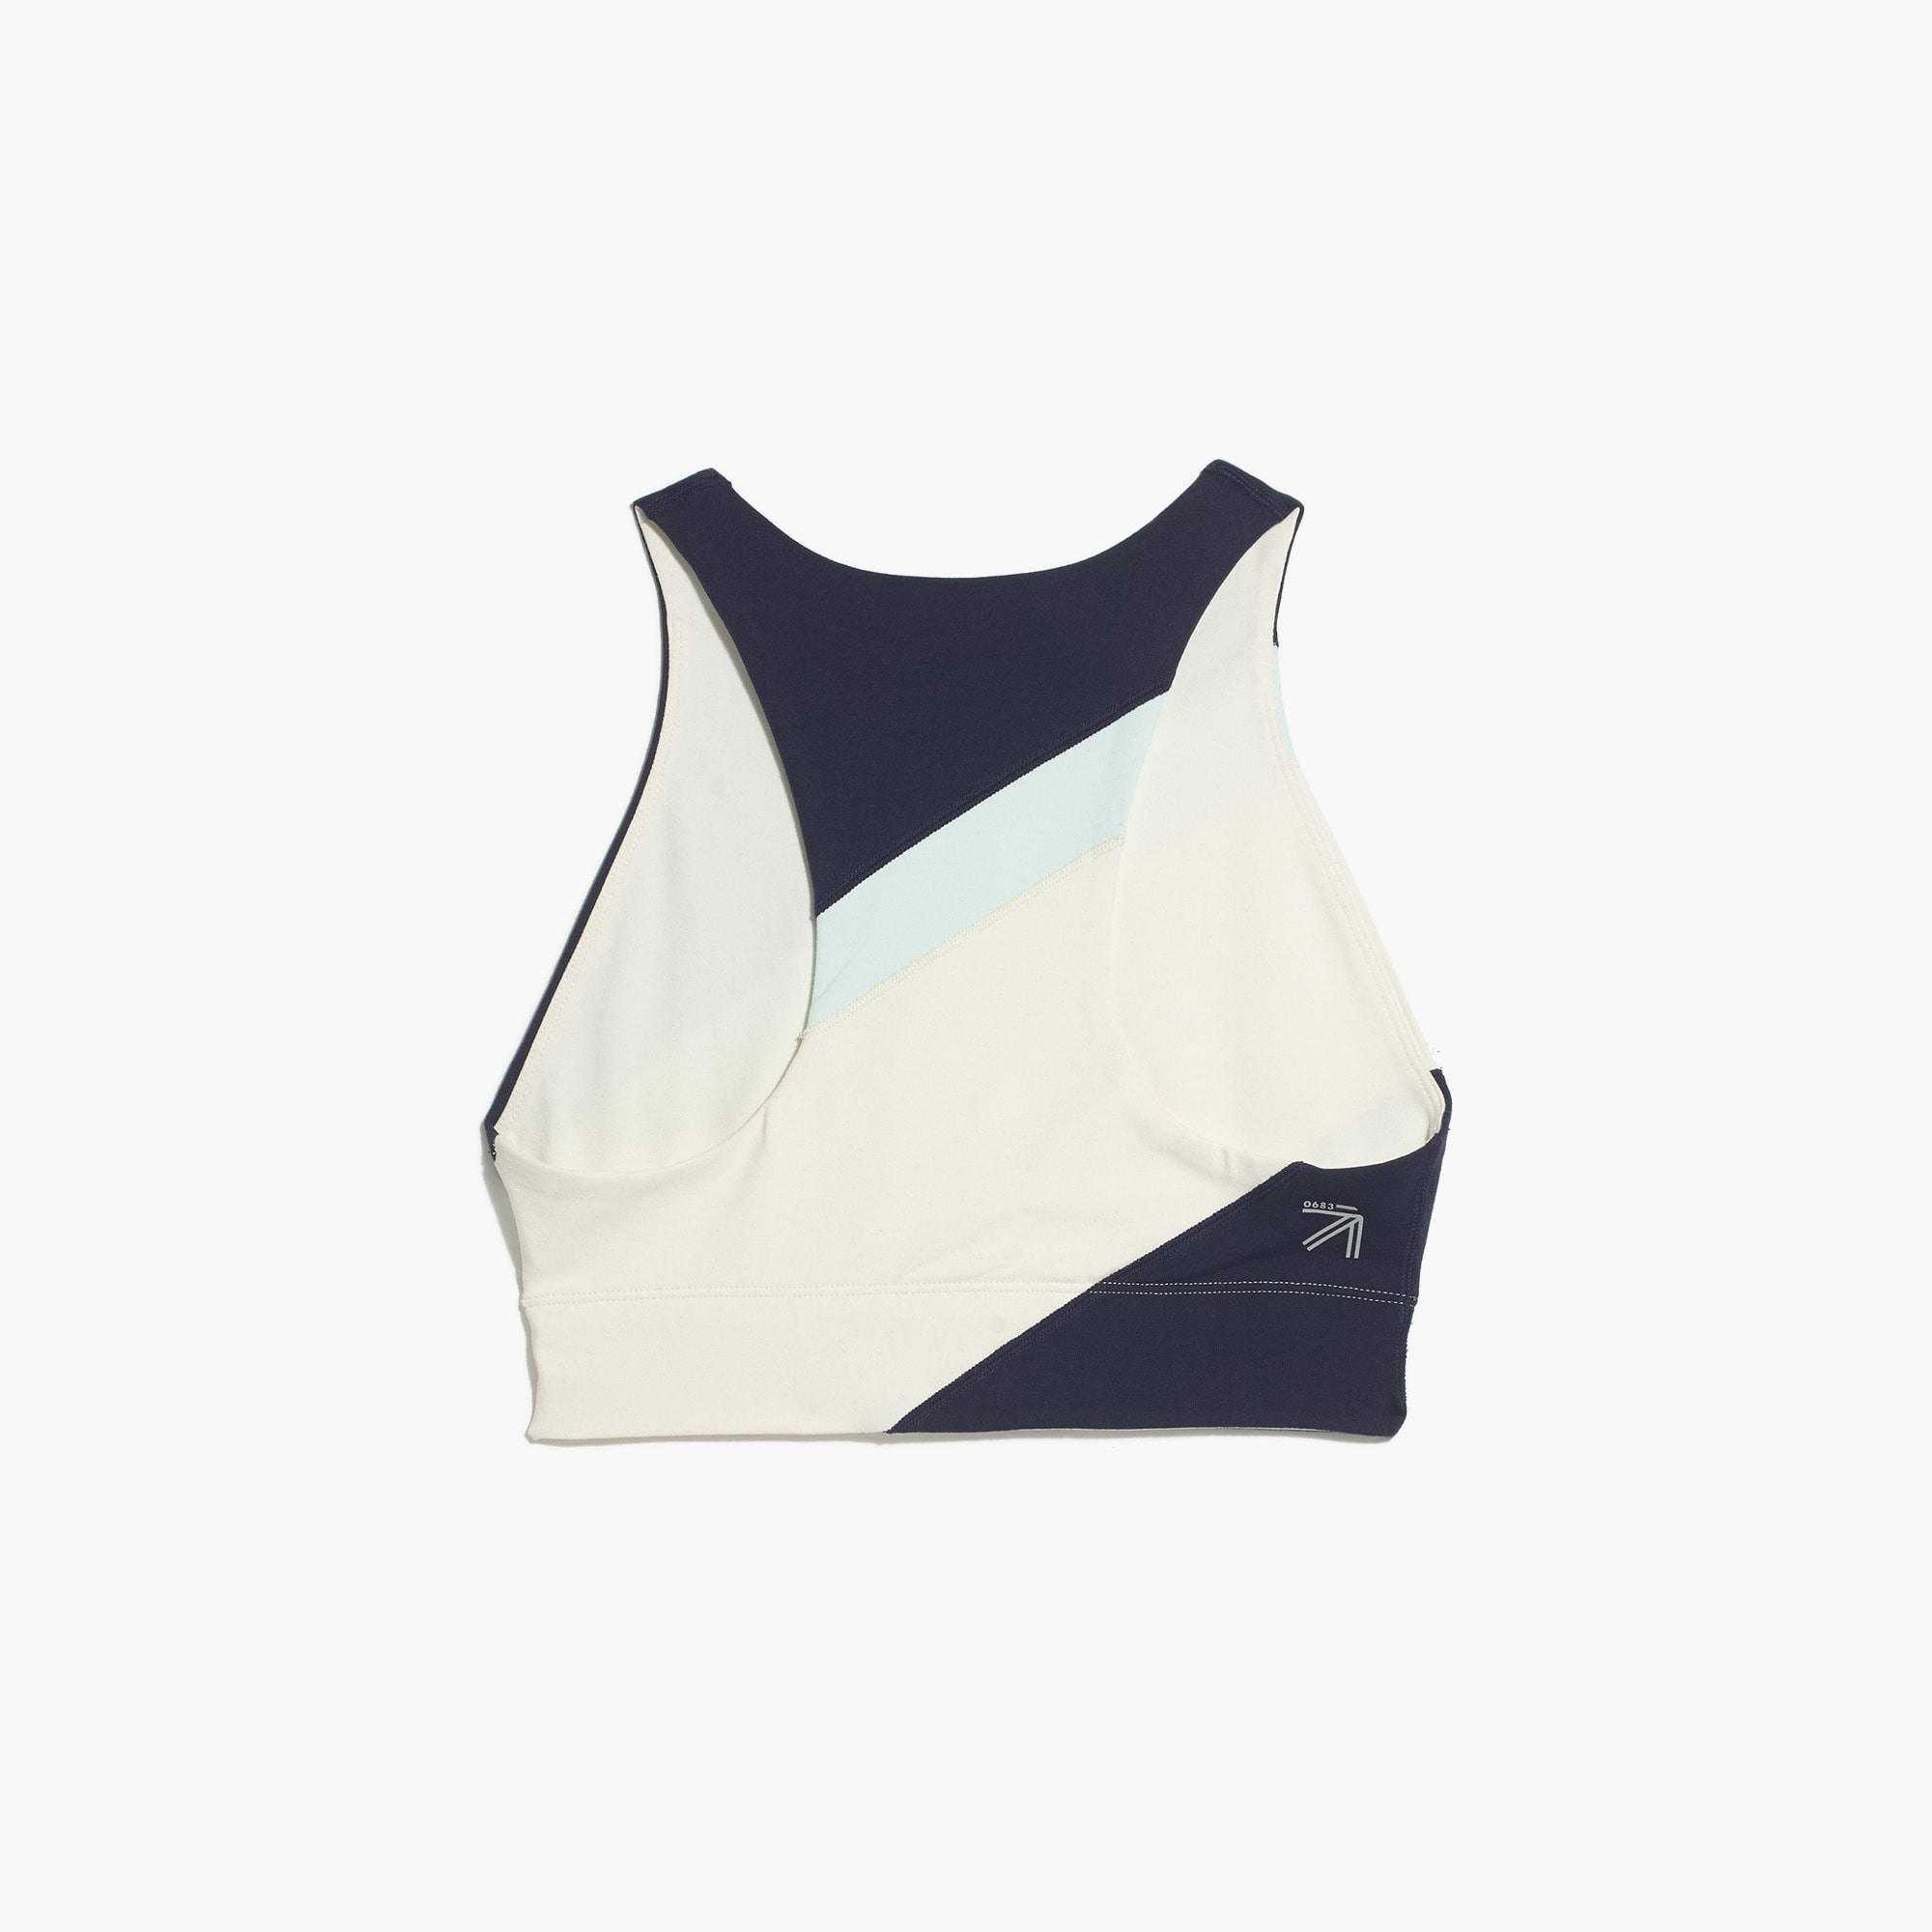 Image 3 for New Balance® for J.Crew performance crop top in striped colorblock